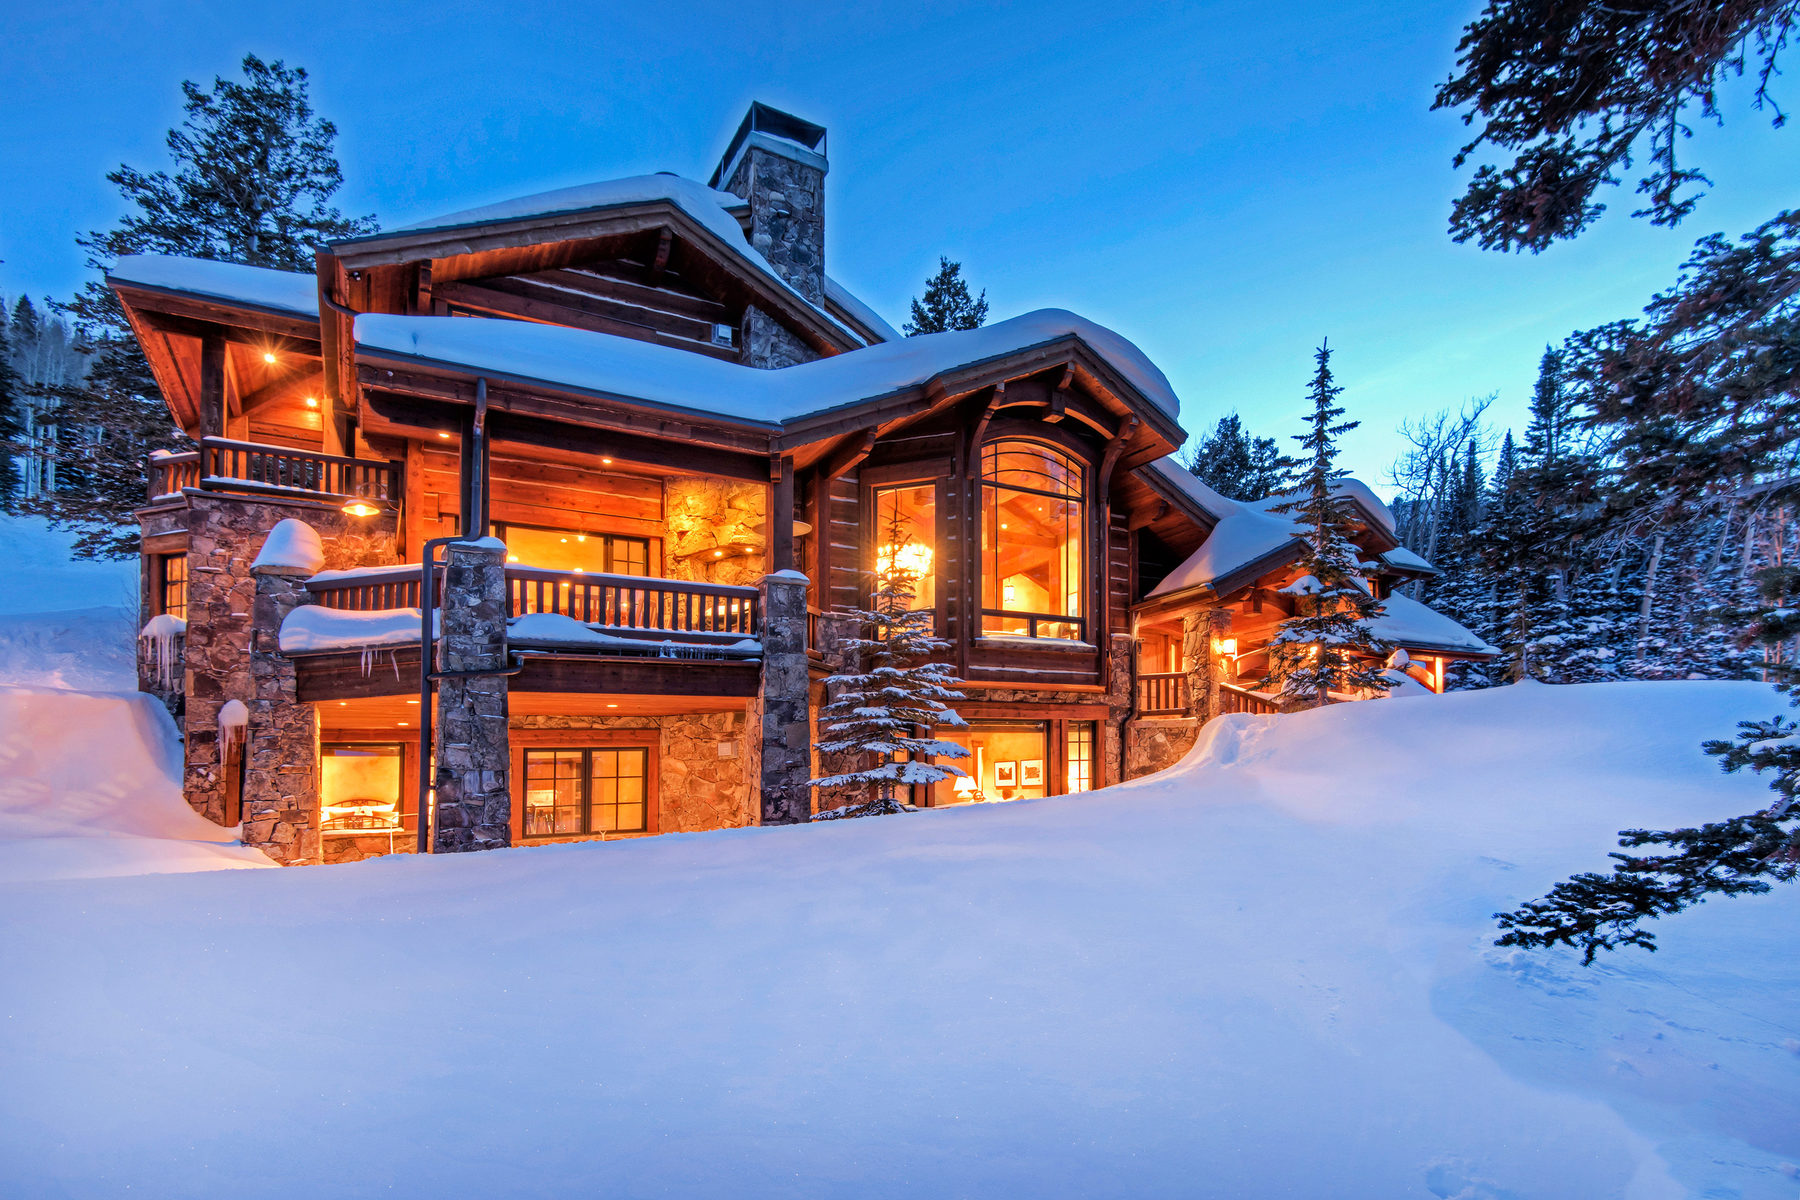 Single Family Home for Sale at Dreamcatcher Lodge 125 White Pine Canyon Rd Park City, Utah 84060 United States